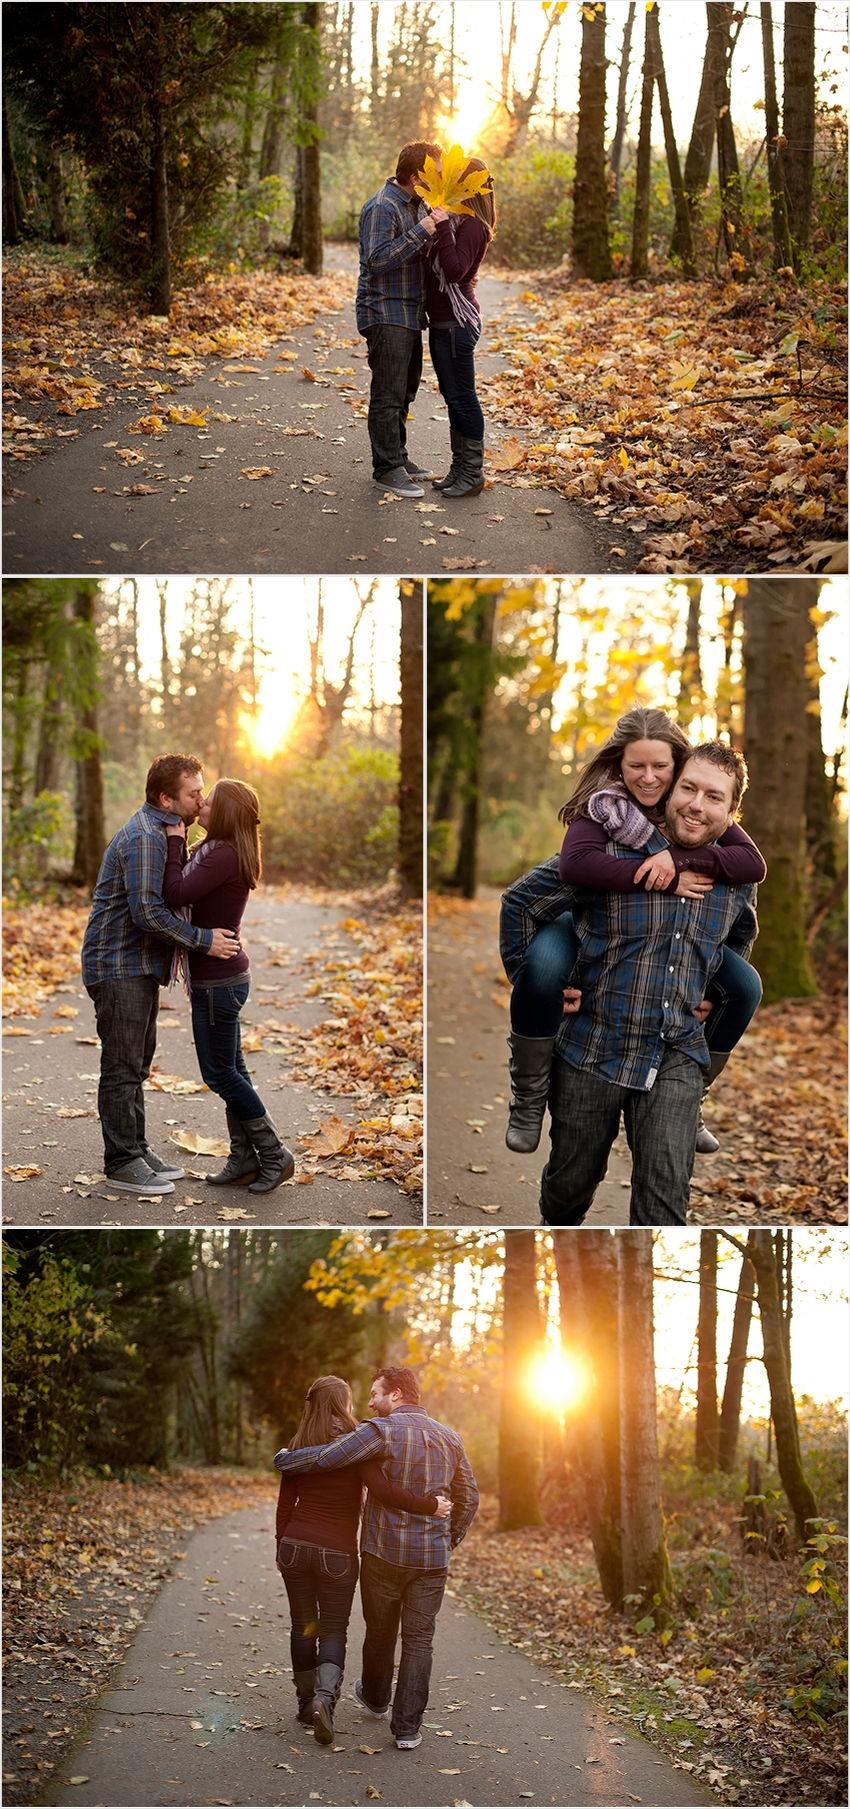 Bryan & Angela Abbotsford Wedding Photographer Autumn leaves